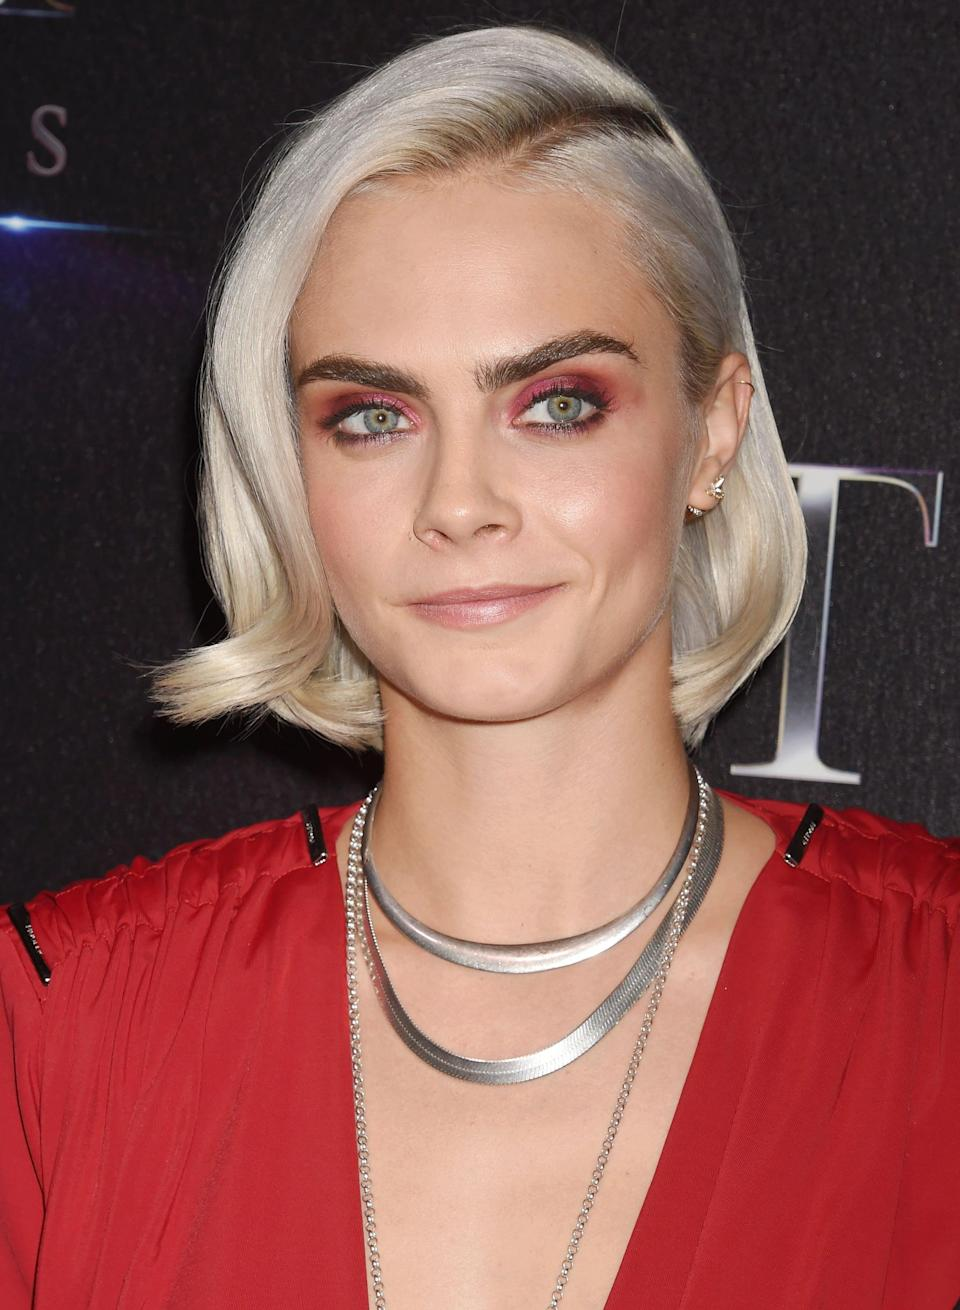 <p>Old Hollywood waves - but make it extremely cool. At CinemaCon, Delevingne wore her lob with a deep, diagonal side part, adding soft bends at the front of the hair à la Veronica Lake in the '40s. The cool, platinum tone and short length breathed new life into the classic red carpet style. </p>